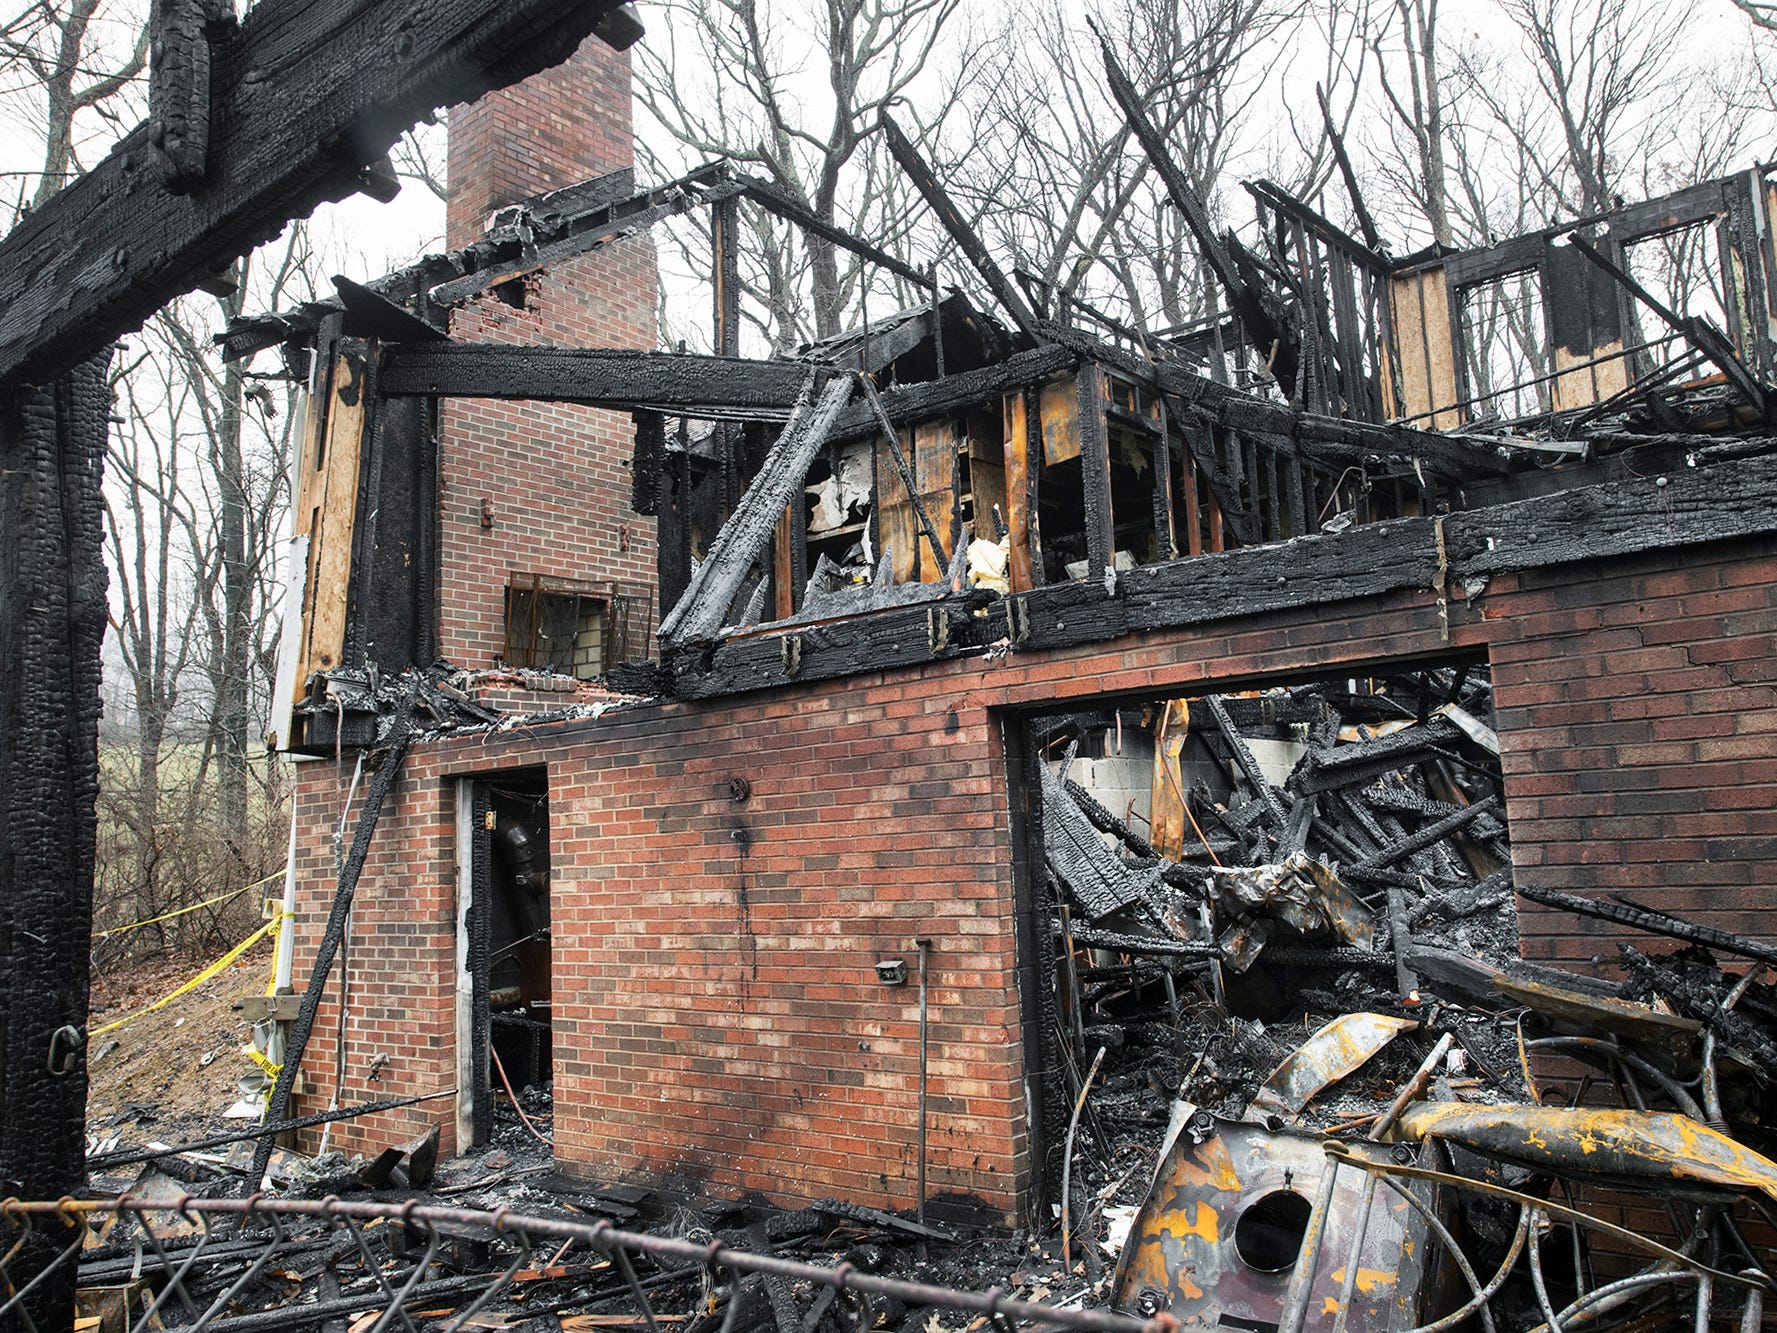 The fireplace on the second floor is still standing on Sunday December 2, 2018. The fire began when a log popped in the fireplace ignighting drapes and carpet on the second floor.